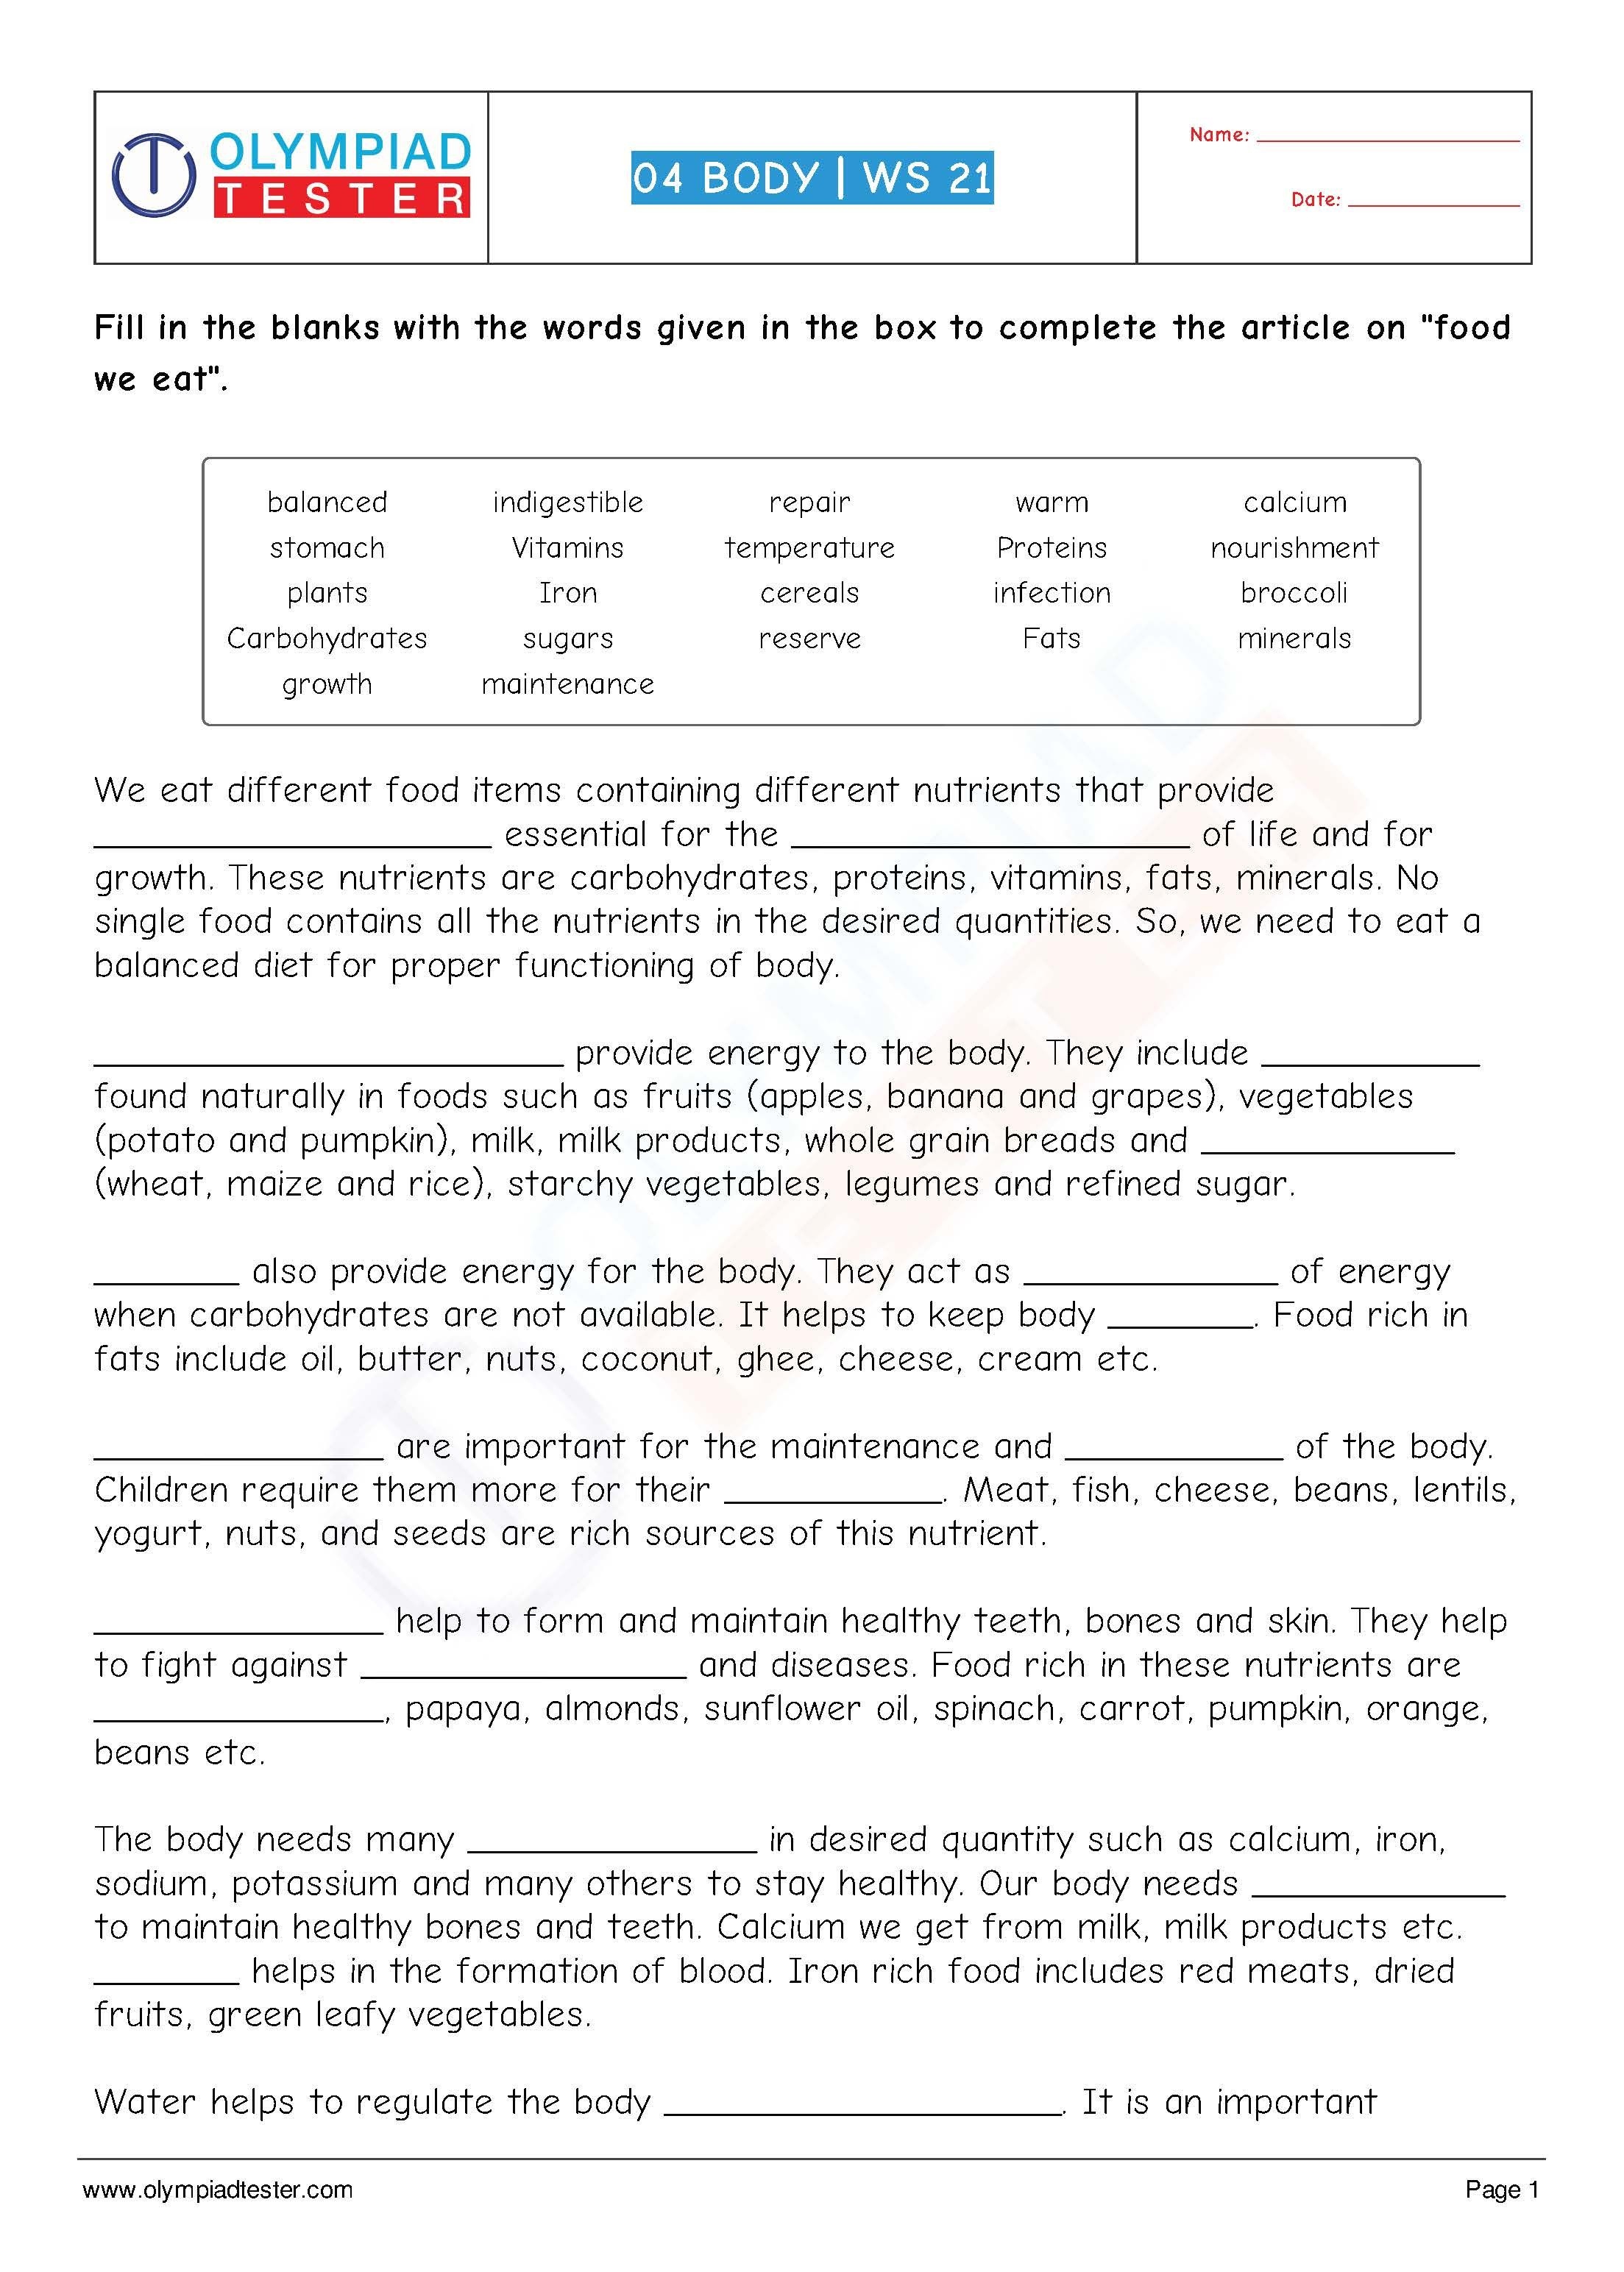 Human Body Worksheet 21